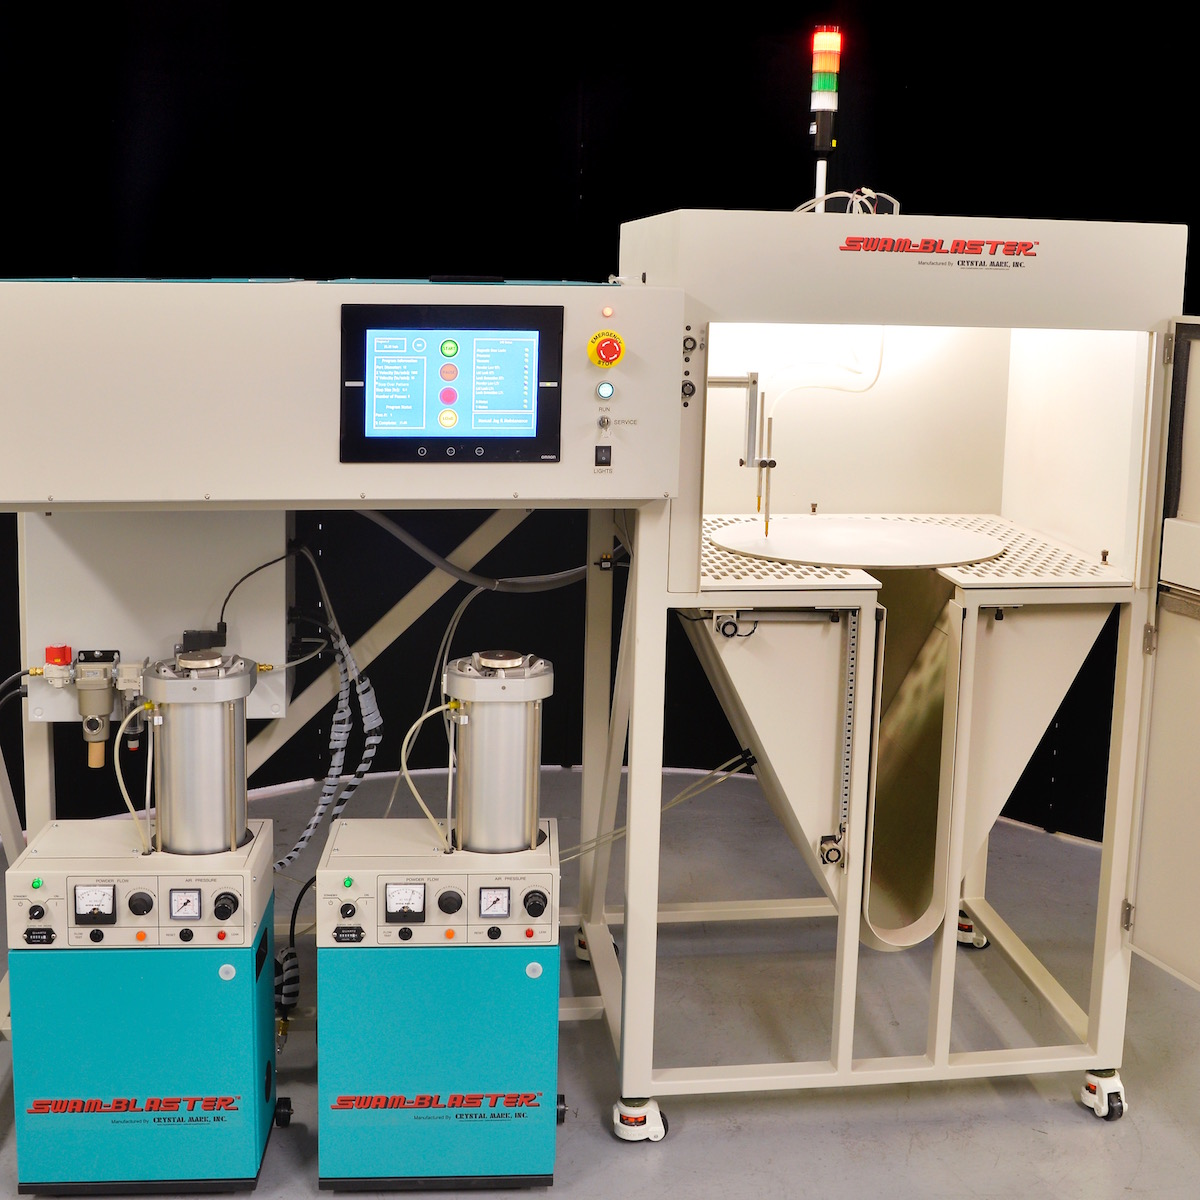 SWAM Automated System NP 24x24 | Selective Micro Abrasive Processing on Large Pieces